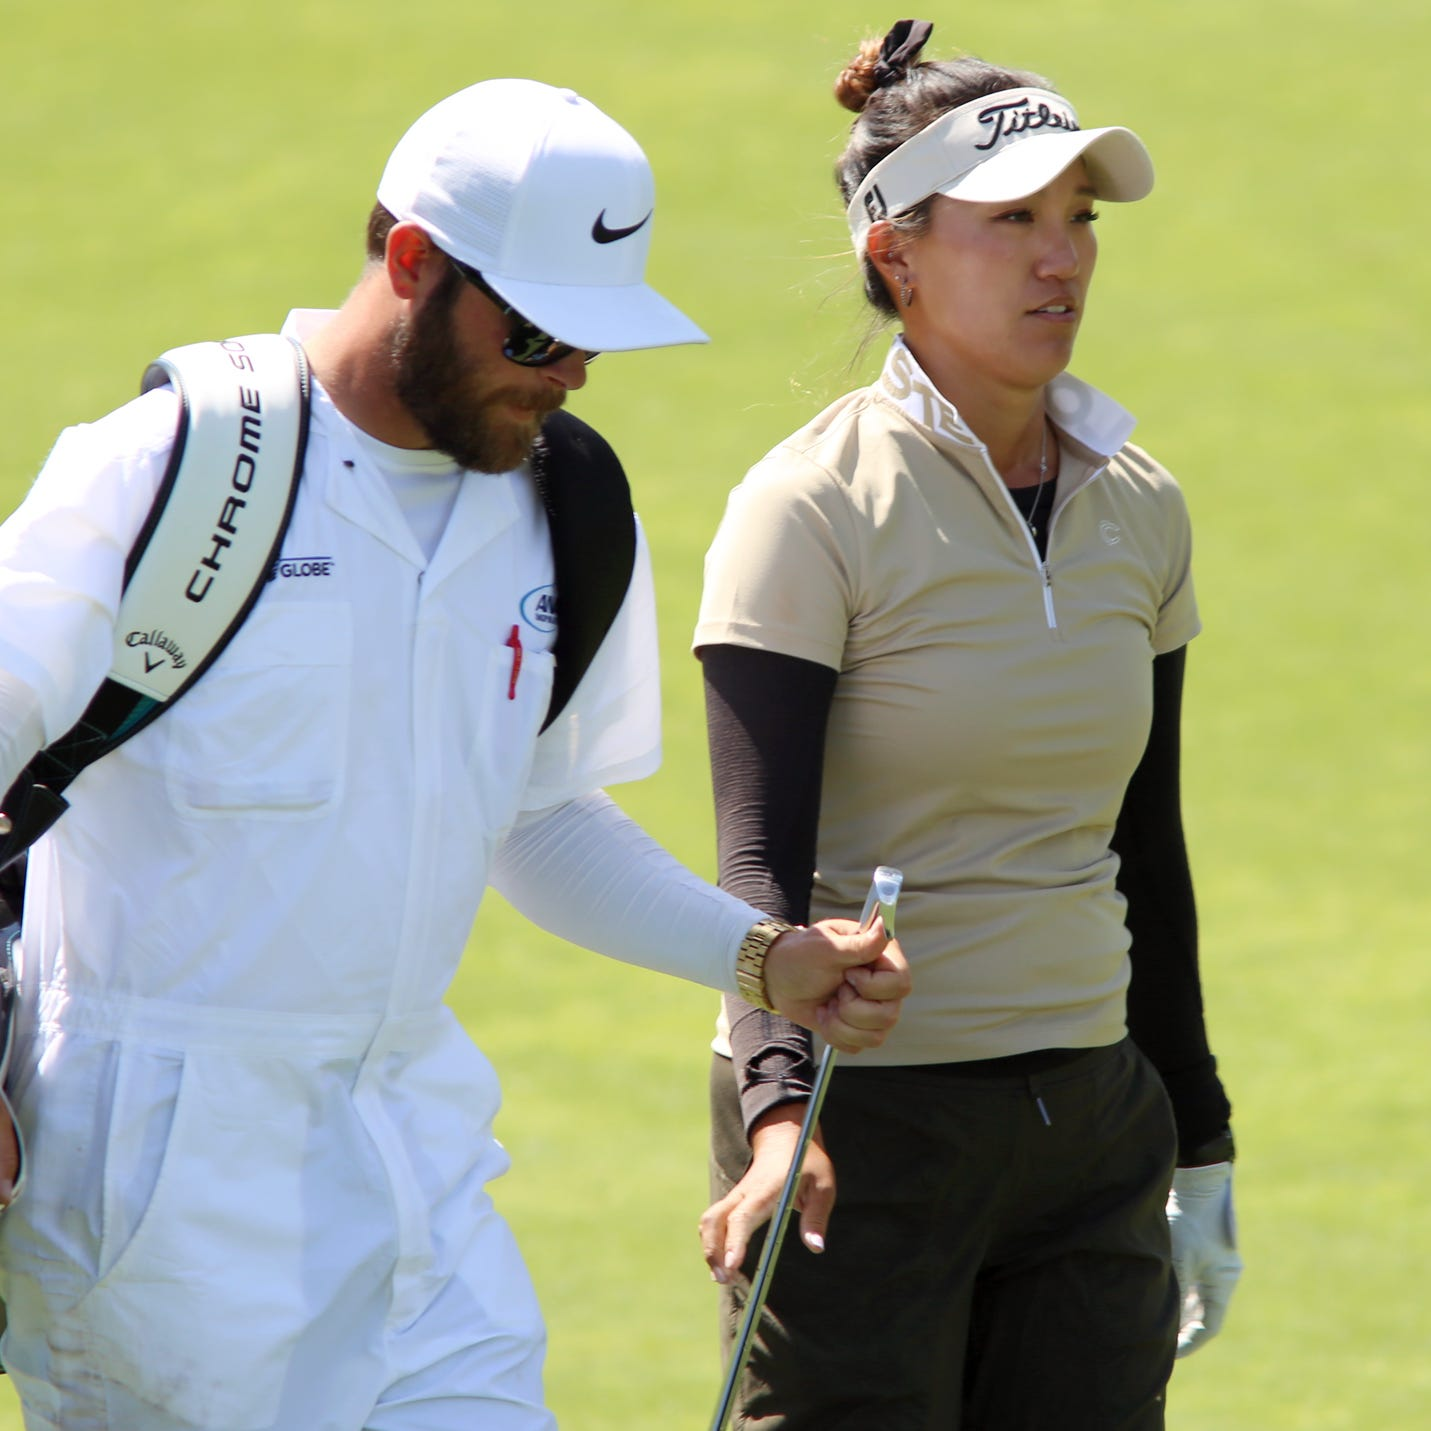 LPGA golfer misses ANA Inspiration cut with mish-mash set after her golf clubs were stolen